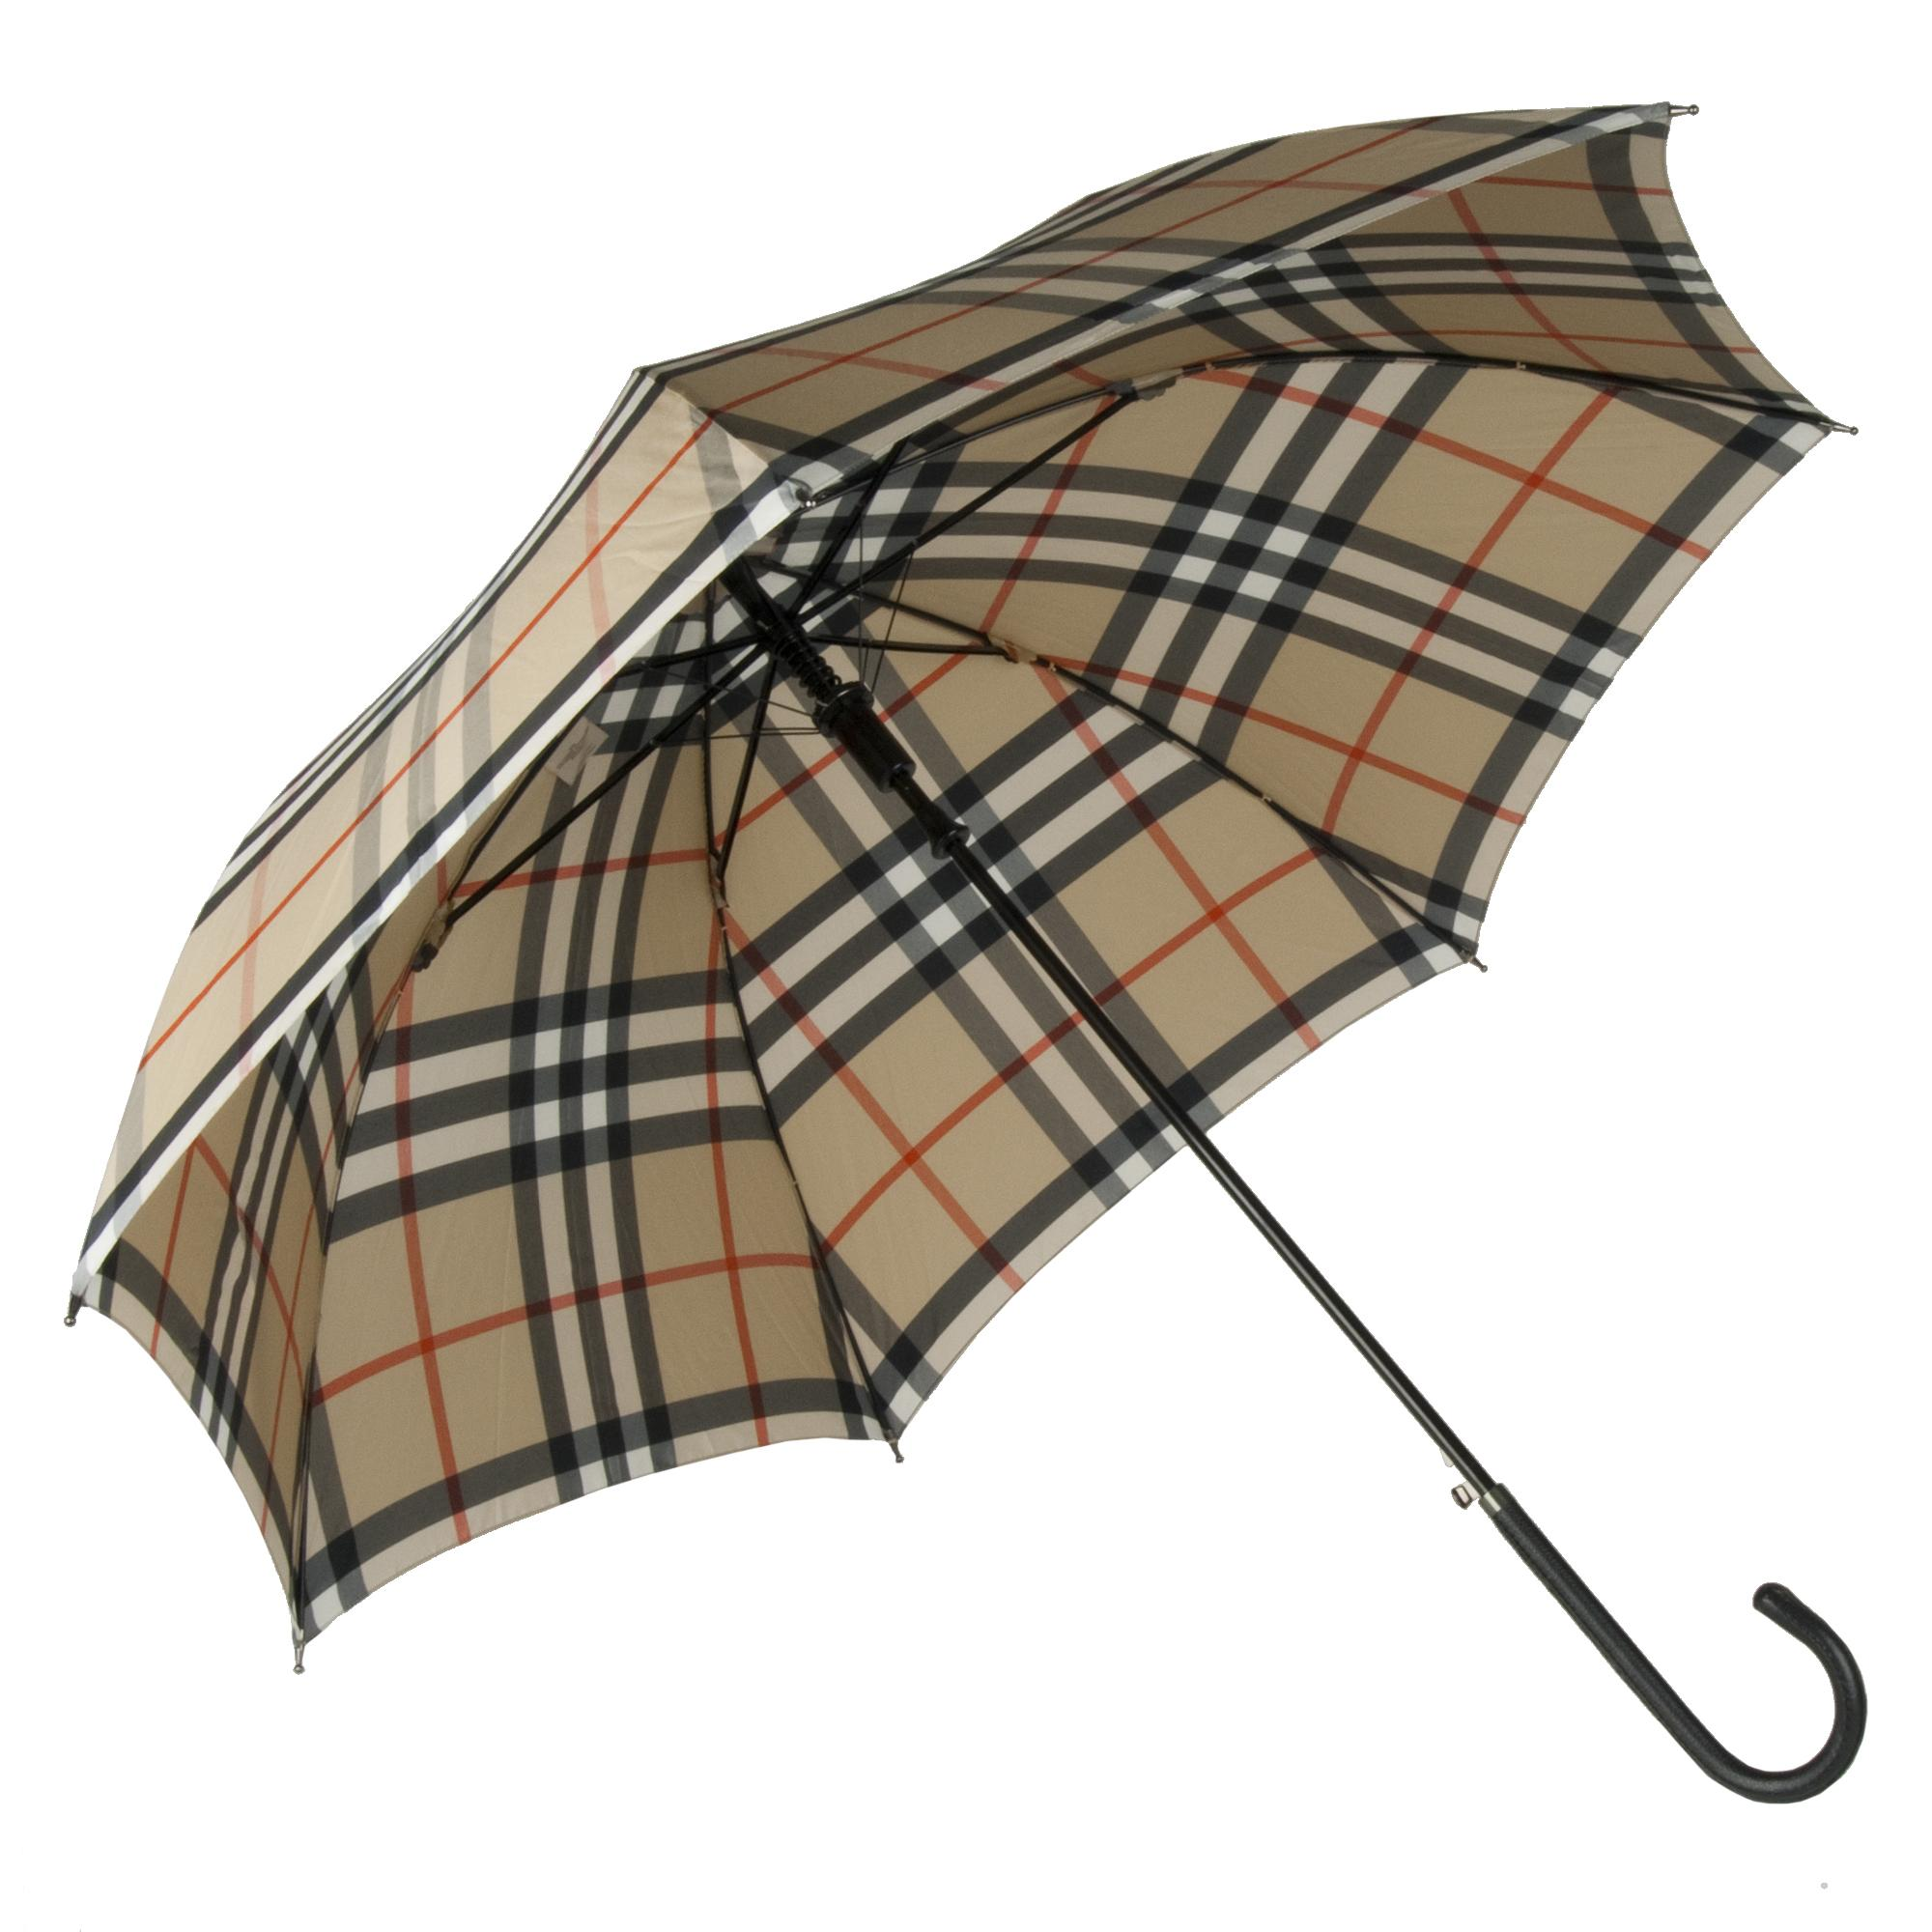 photograph relating to Umbrella Pattern Printable Free referred to as Burberry Beige Verify Print Walker Umbrella